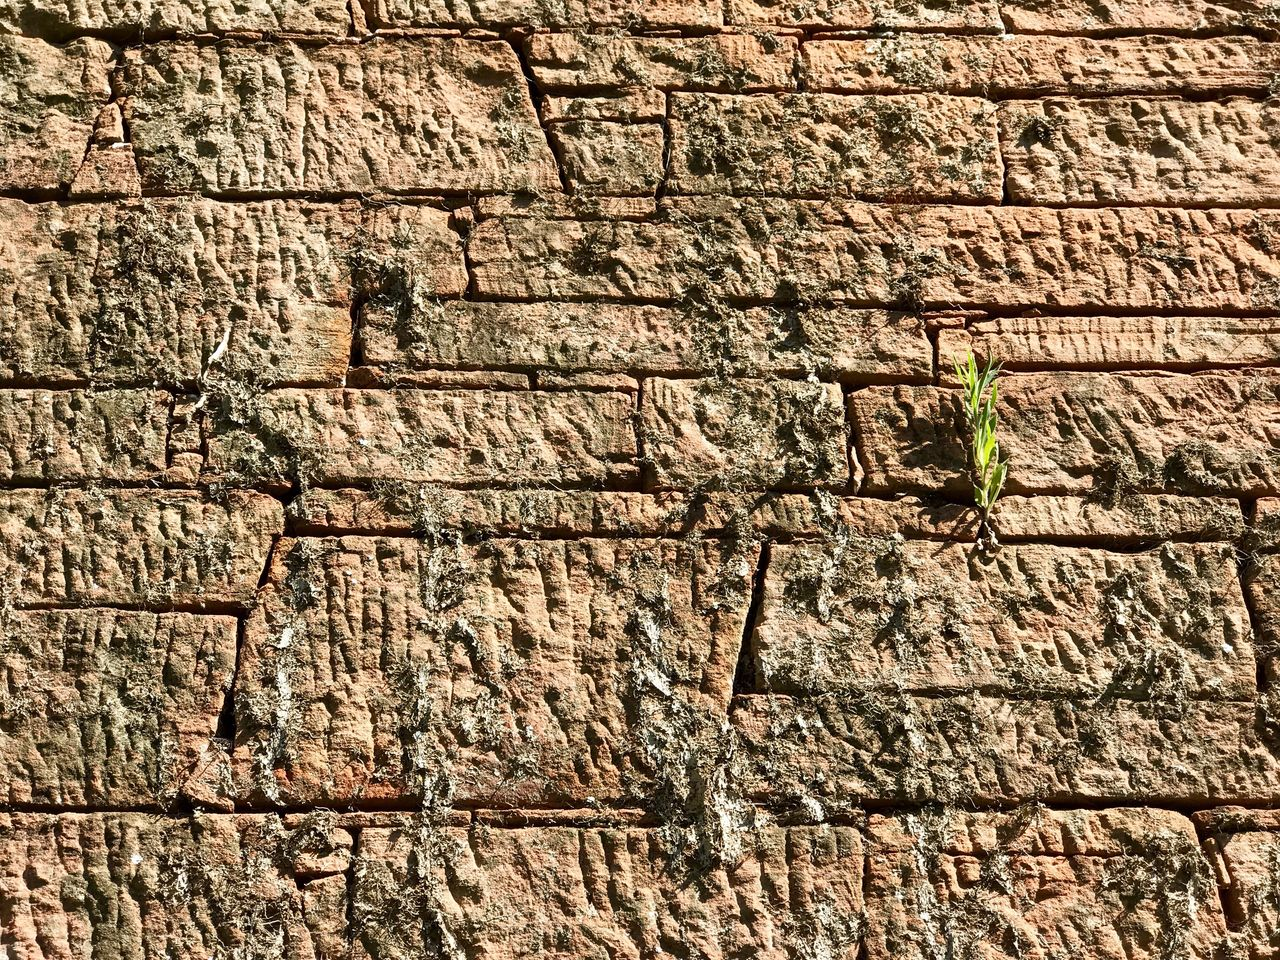 brick wall, textured, built structure, day, no people, outdoors, rough, animals in the wild, architecture, one animal, close-up, building exterior, animal themes, nature